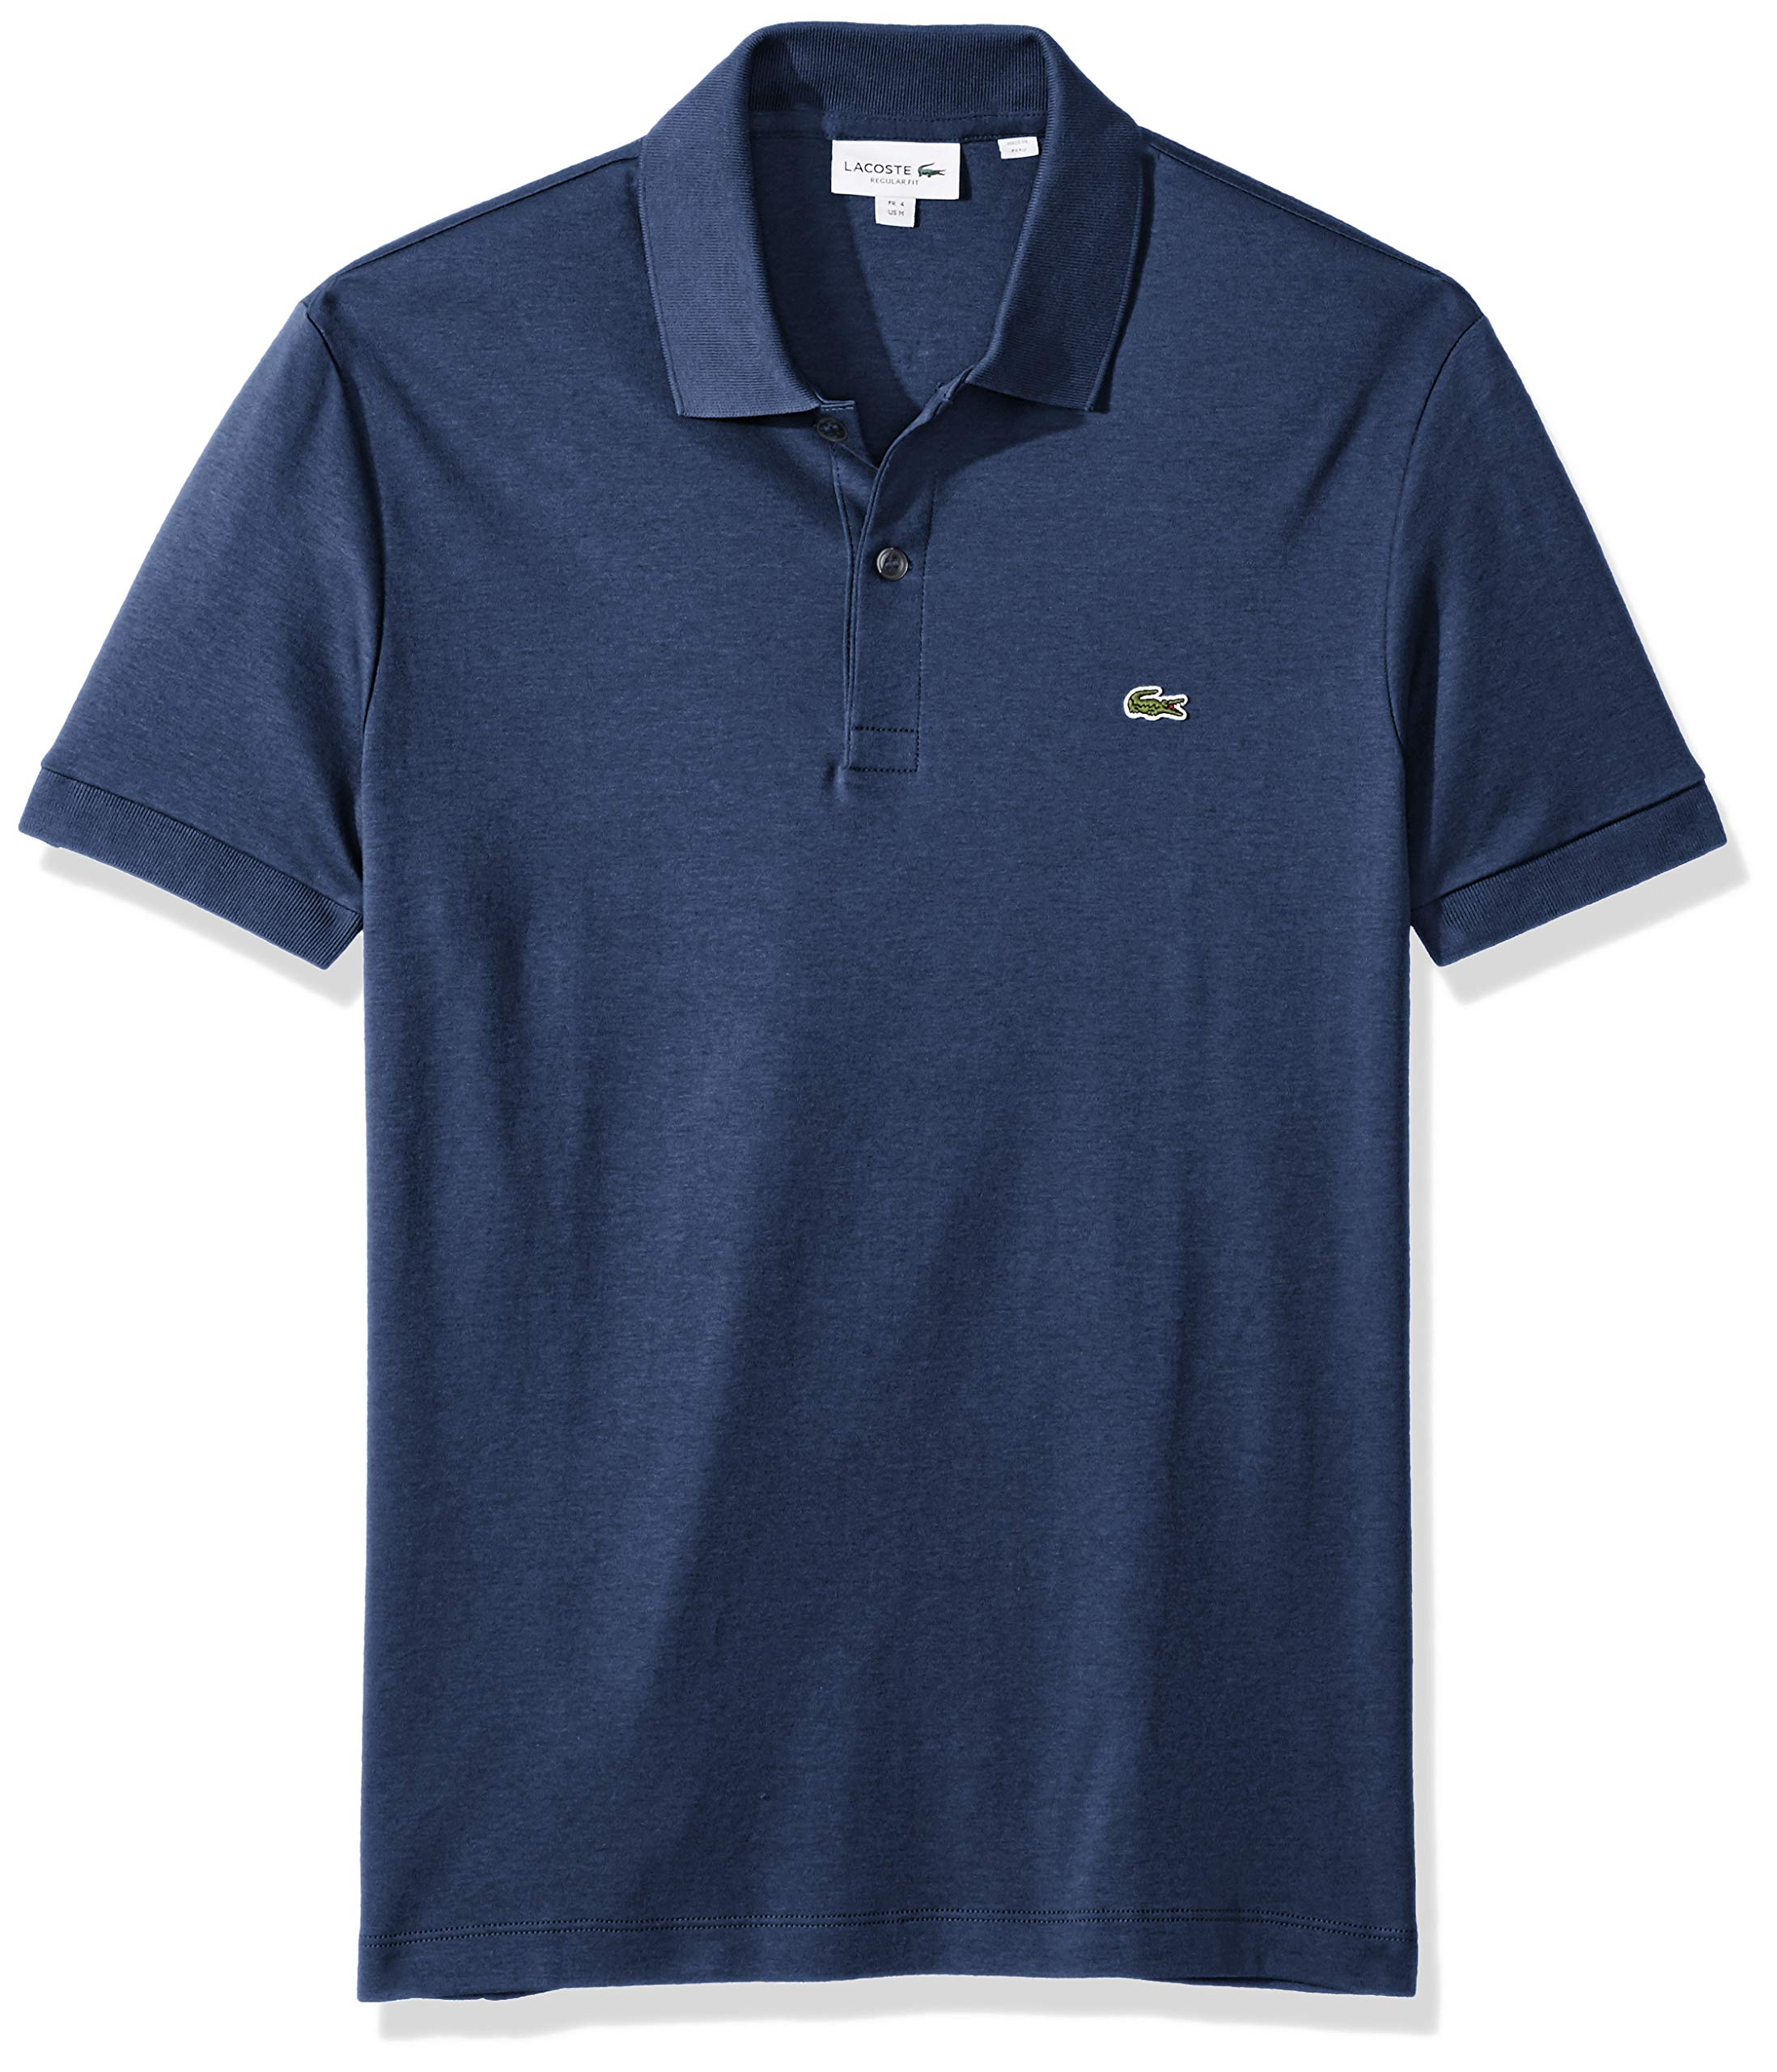 9e6f14af Galleon - Lacoste Men's Short Sleeve Pima Jersey Interlock Regular Fit Polo,  DH2050, Cruise Chine, Medium